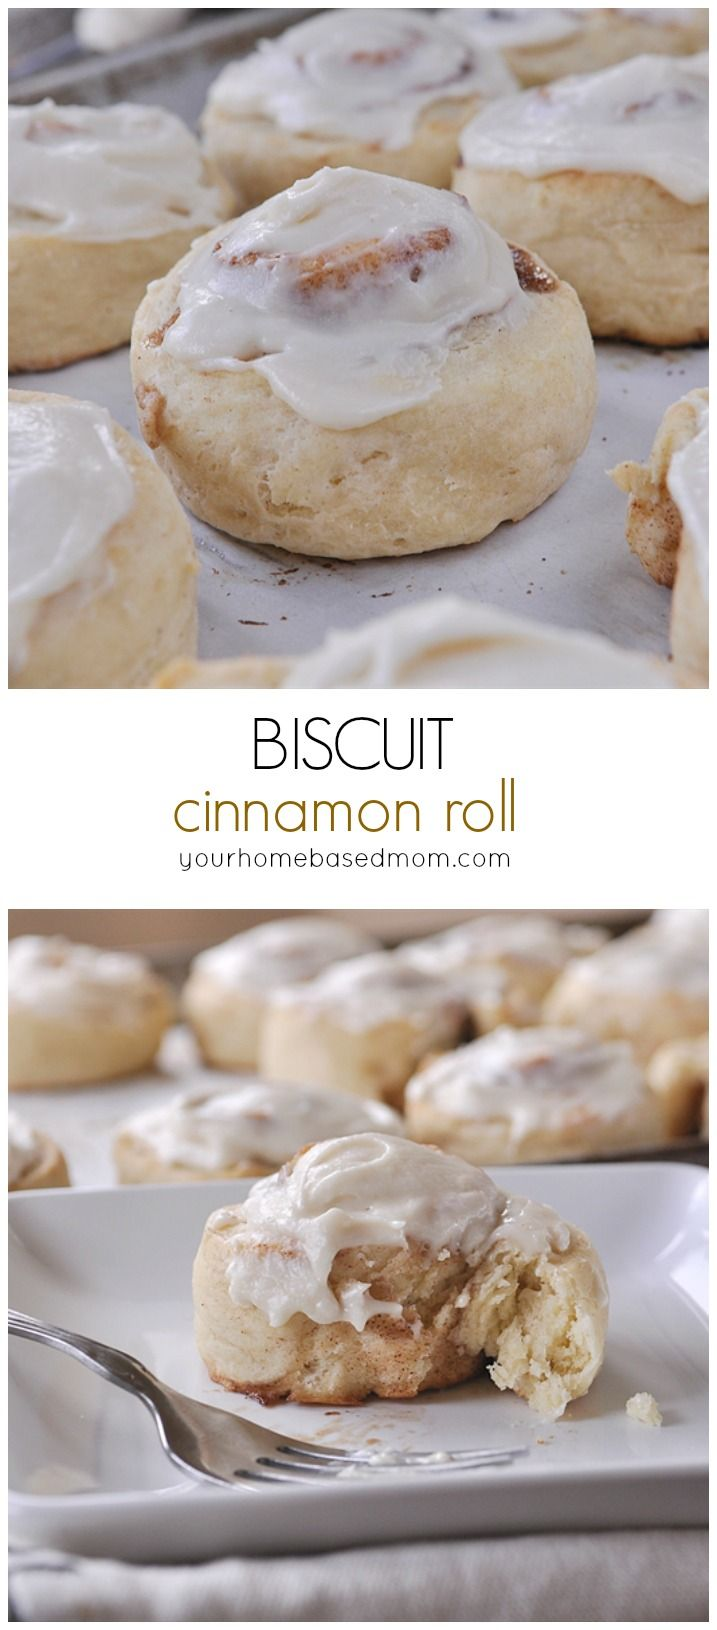 Biscuit Cinnamon Rolls are so easy to make and such a fun twist on traditional cinnamon rolls